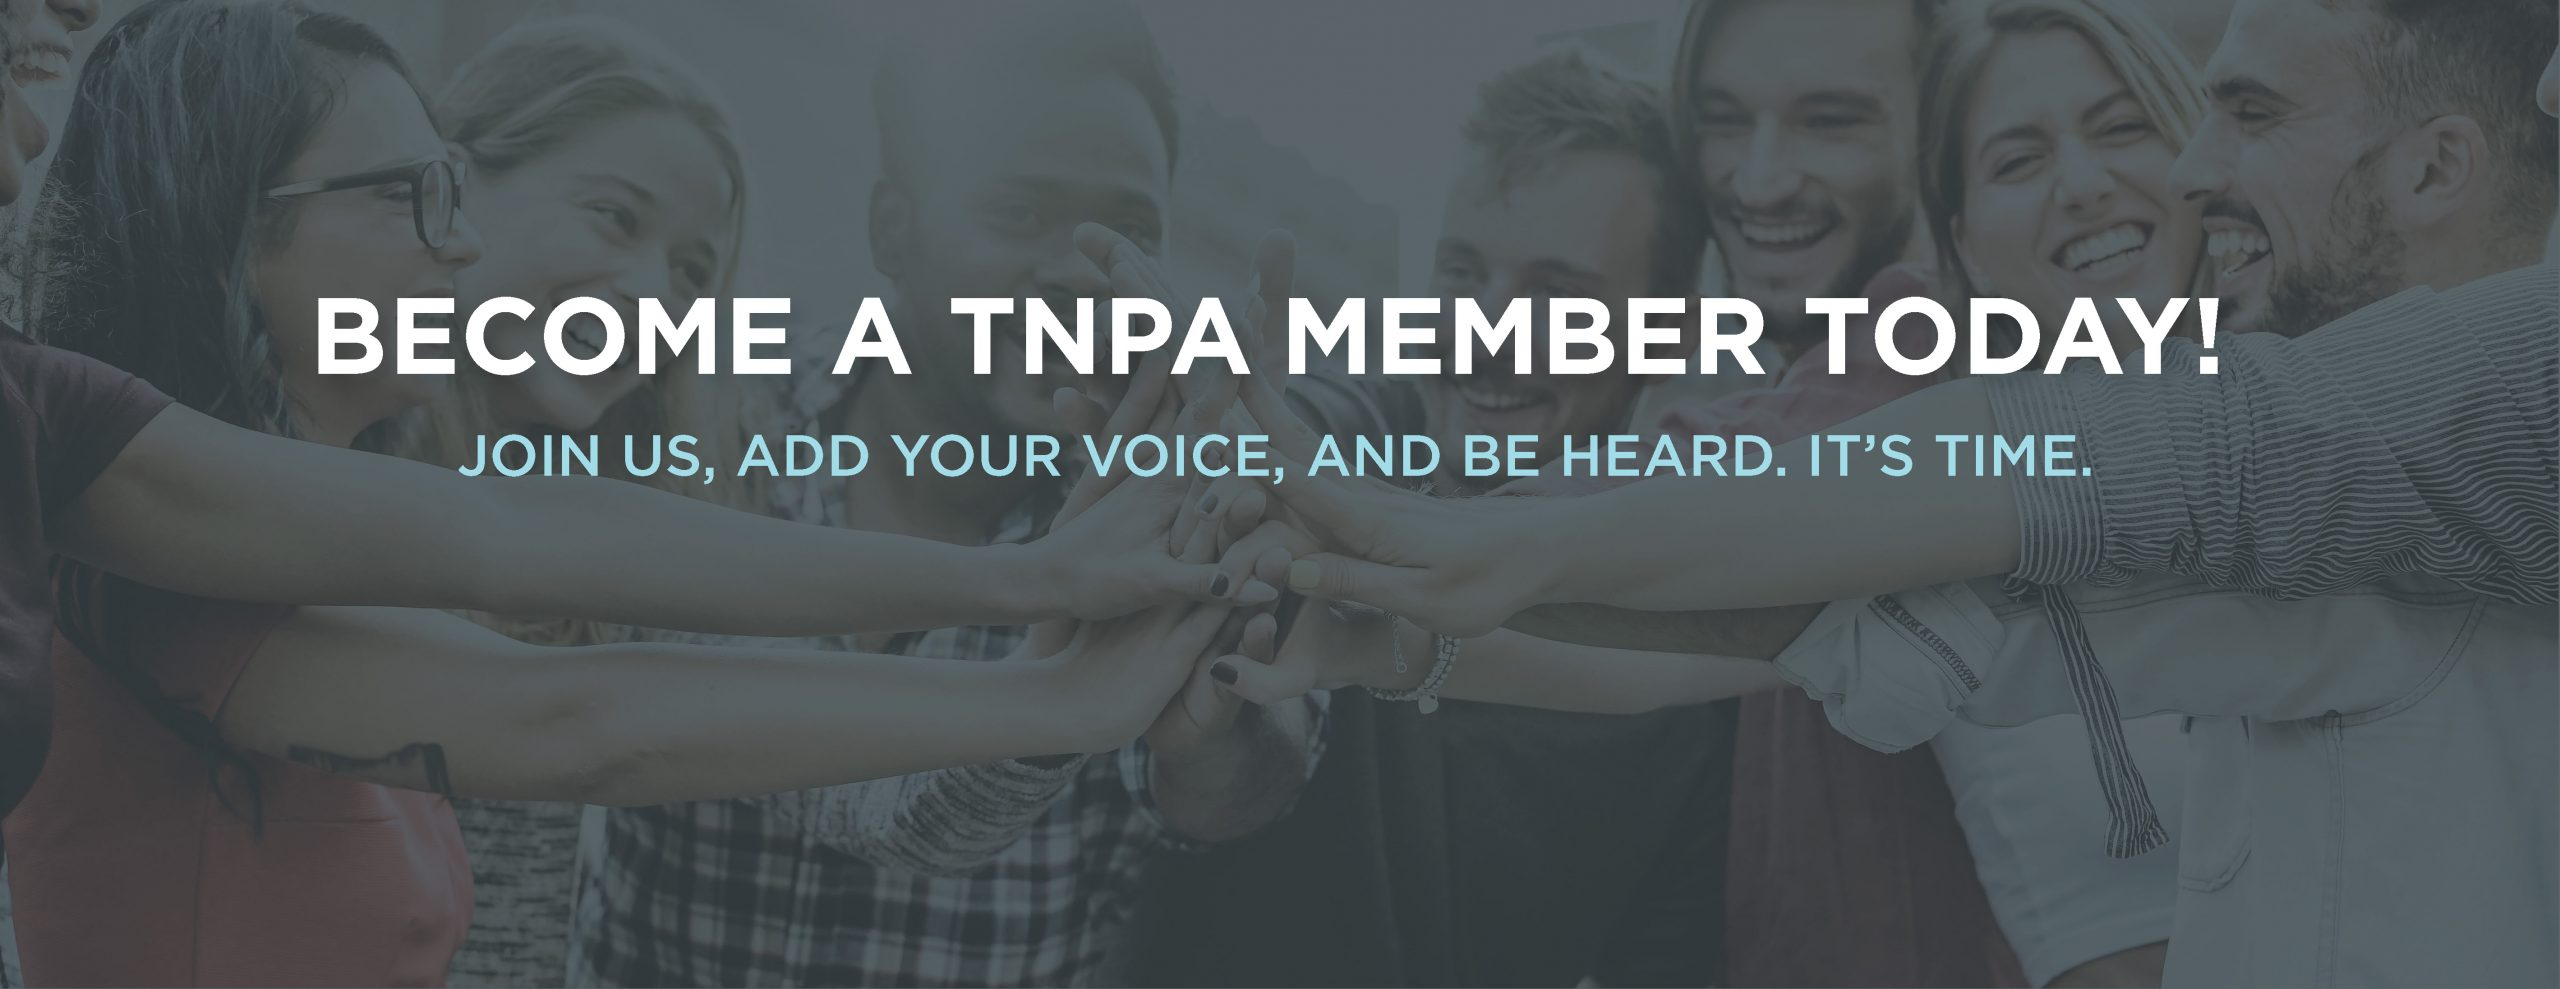 Become a TNPA member today!